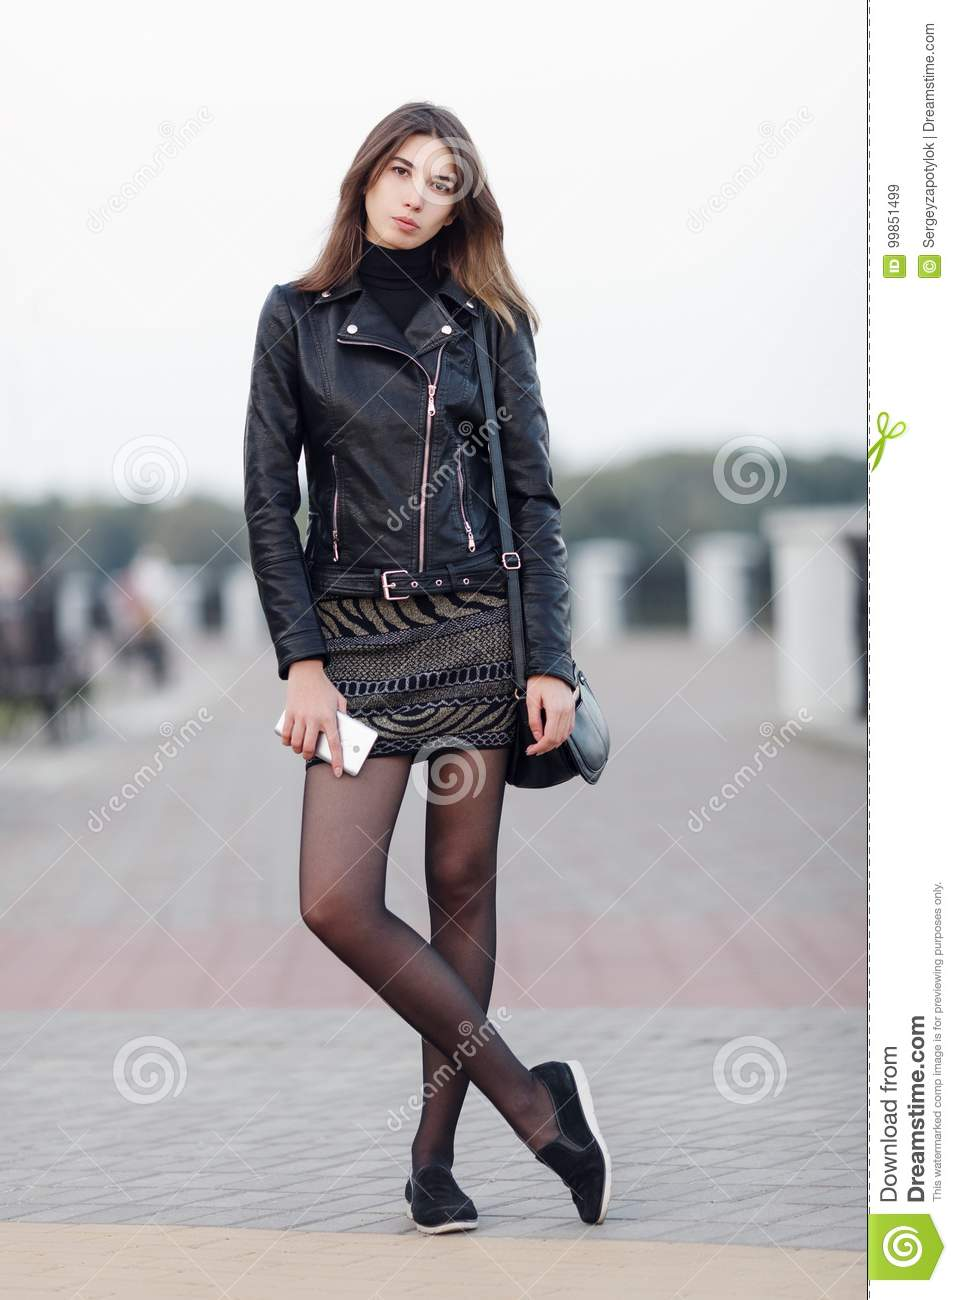 Emotional portrait of a young pretty brunette woman posing full length outdoors city park wearing black leather coat holding smart